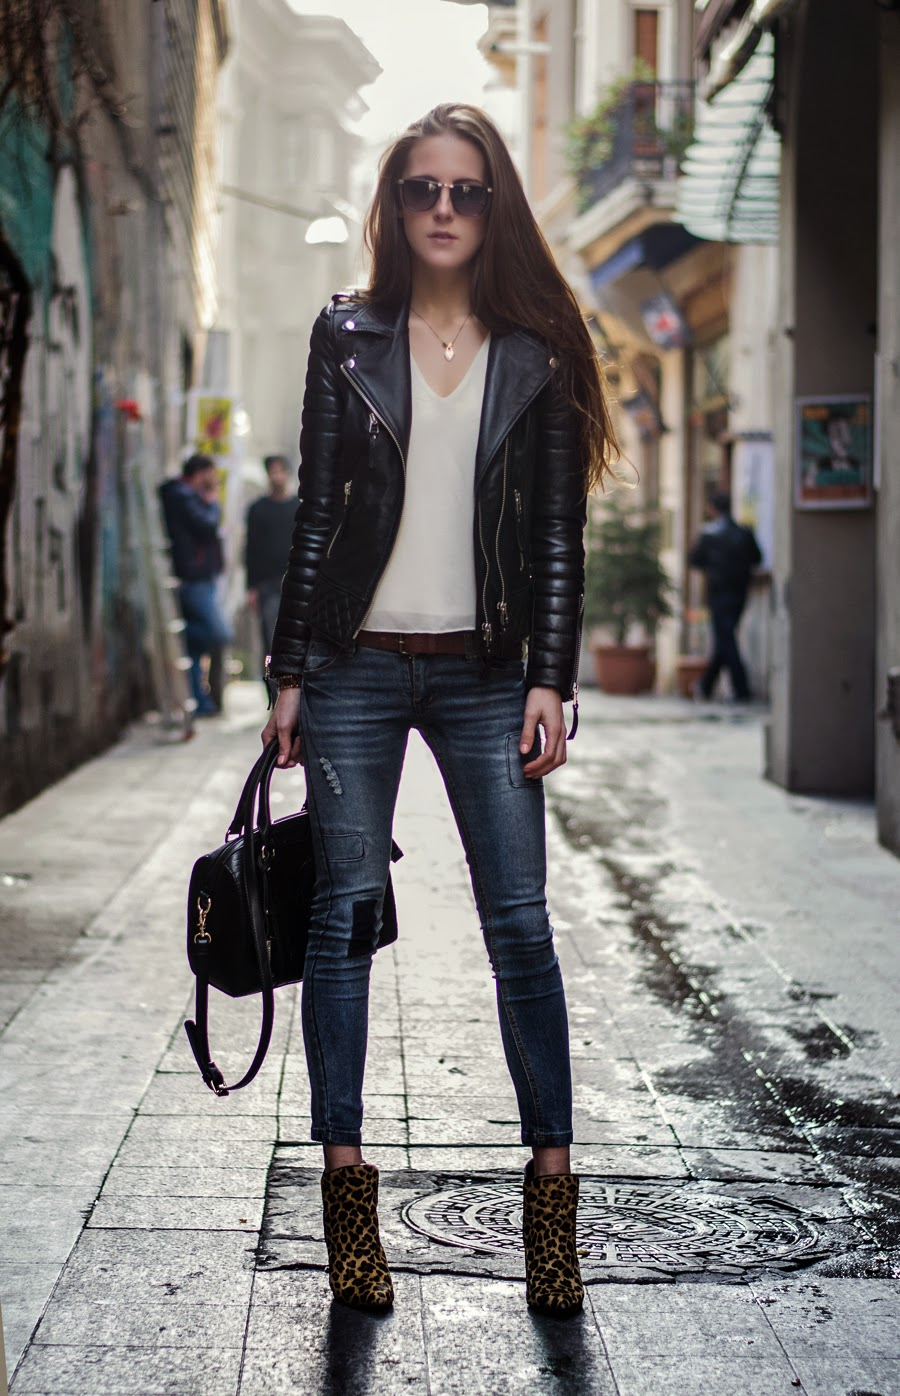 2ad57670e4b4 All about 52 Ways To Wear A Leather Jackets 2019 Become Chic ...